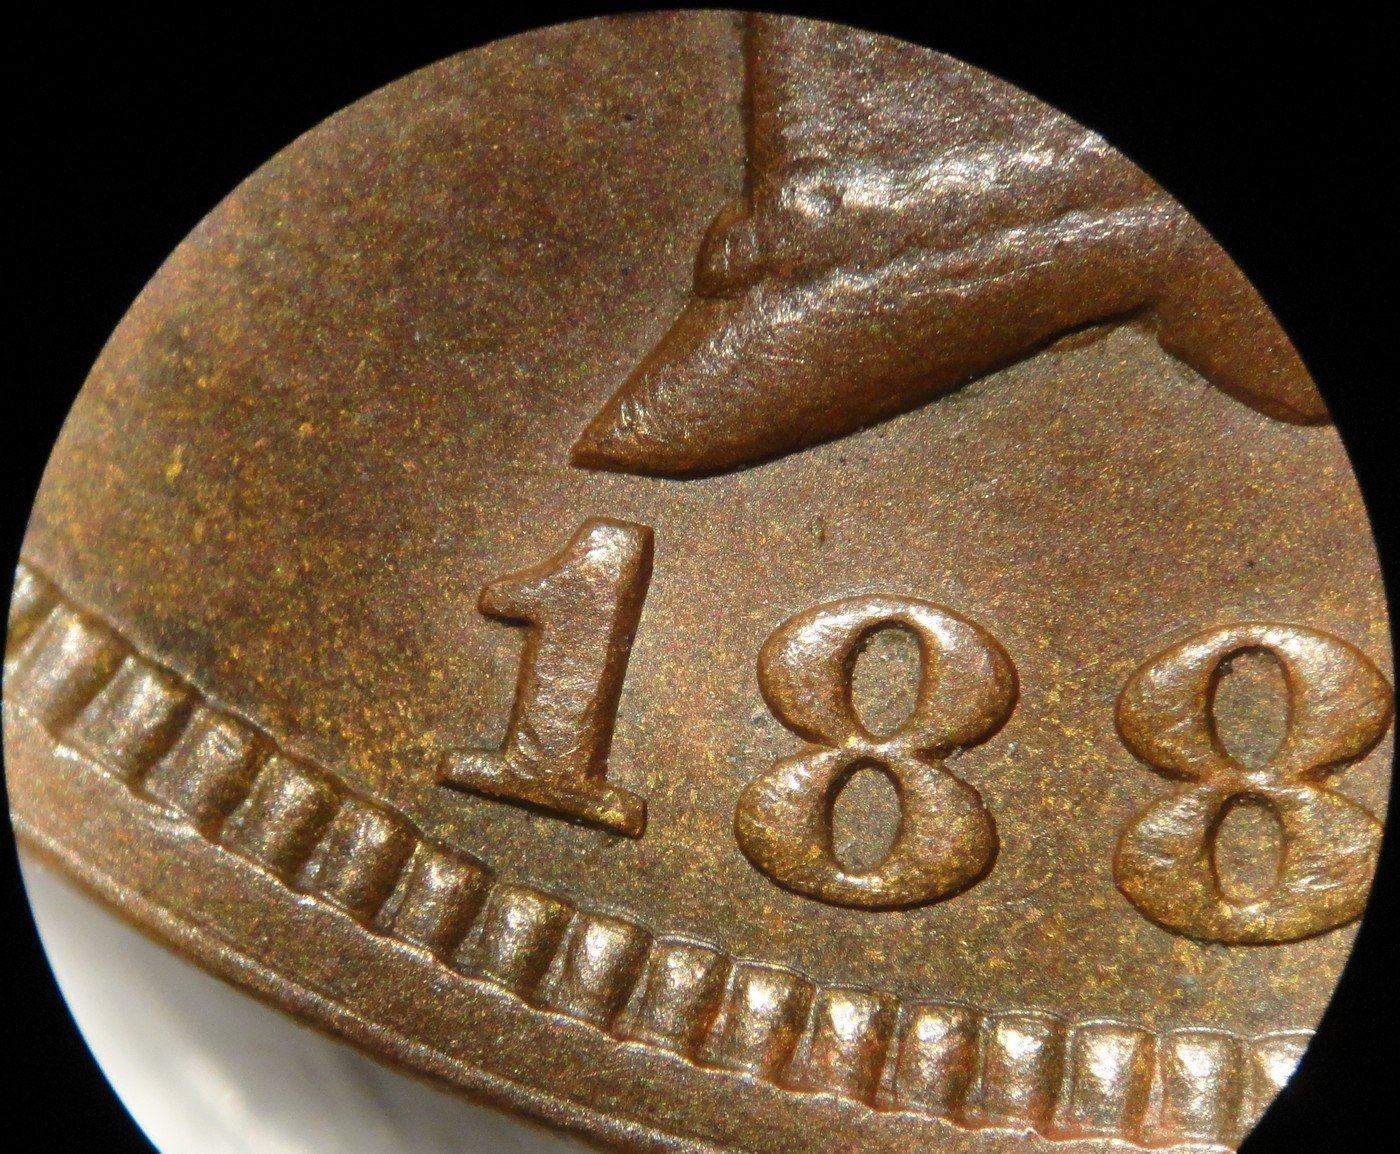 1888 MPD-020 - Indian Head Penny